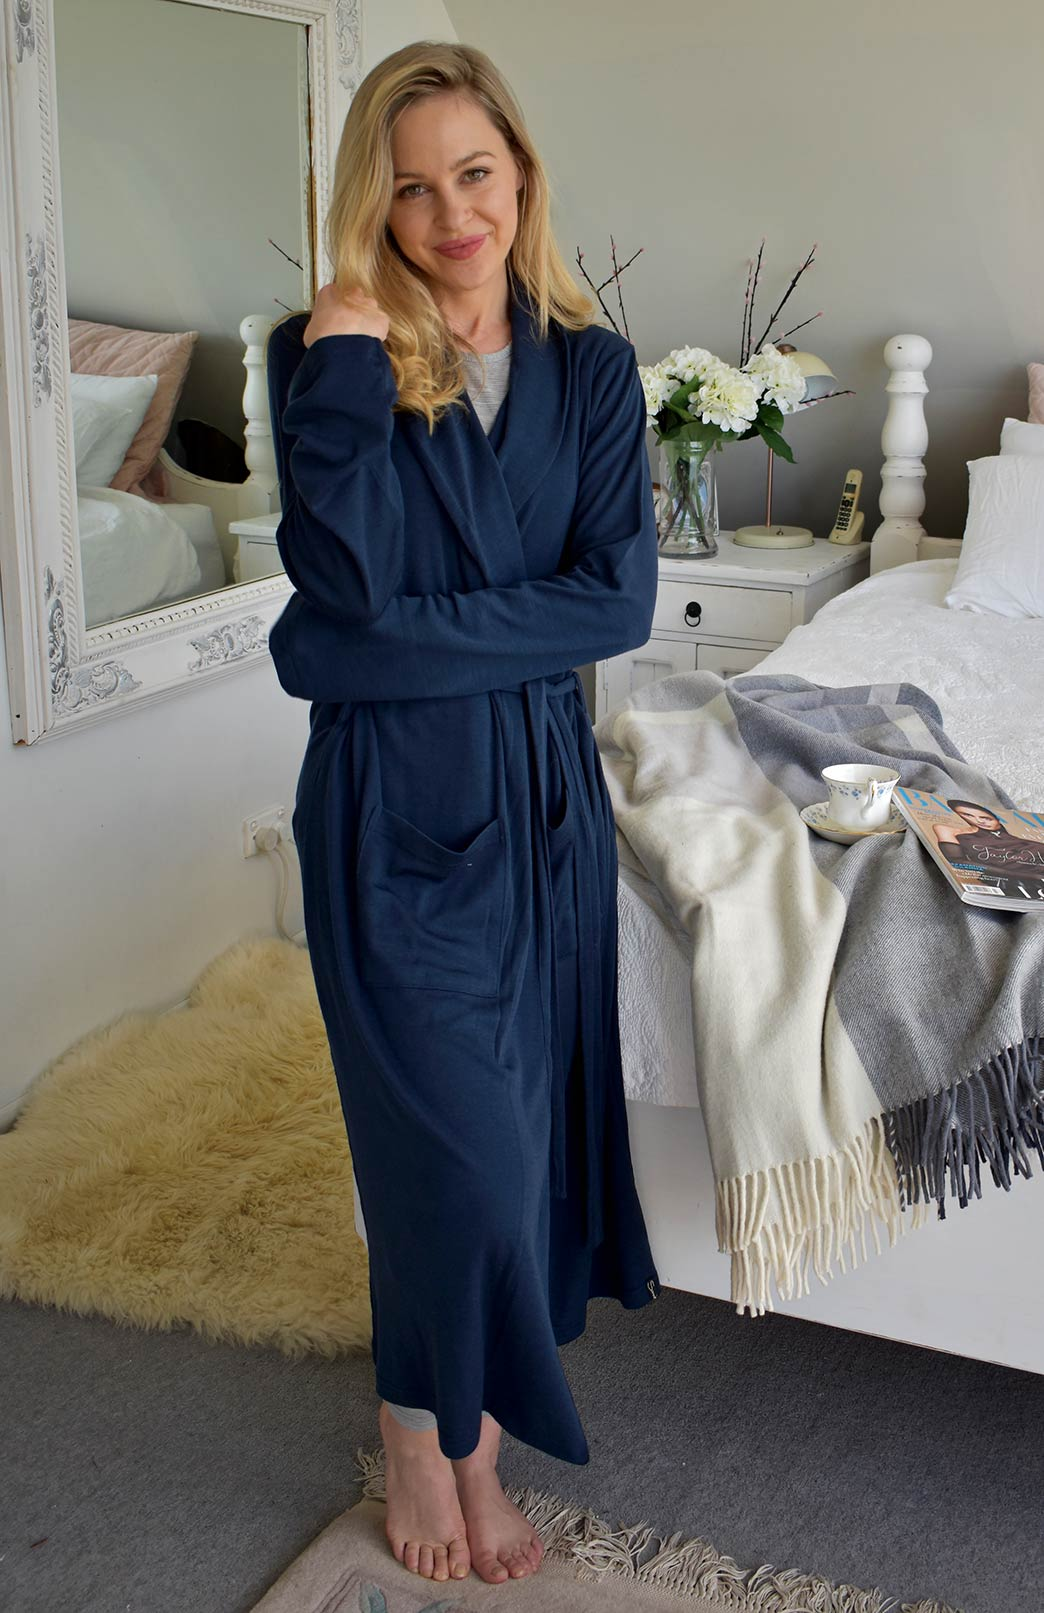 Dressing Gown- Heavyweight - Women's Blue Superfine Merino Wool Dressing Gown with Tie and Side Pockets - Smitten Merino Tasmania Australia